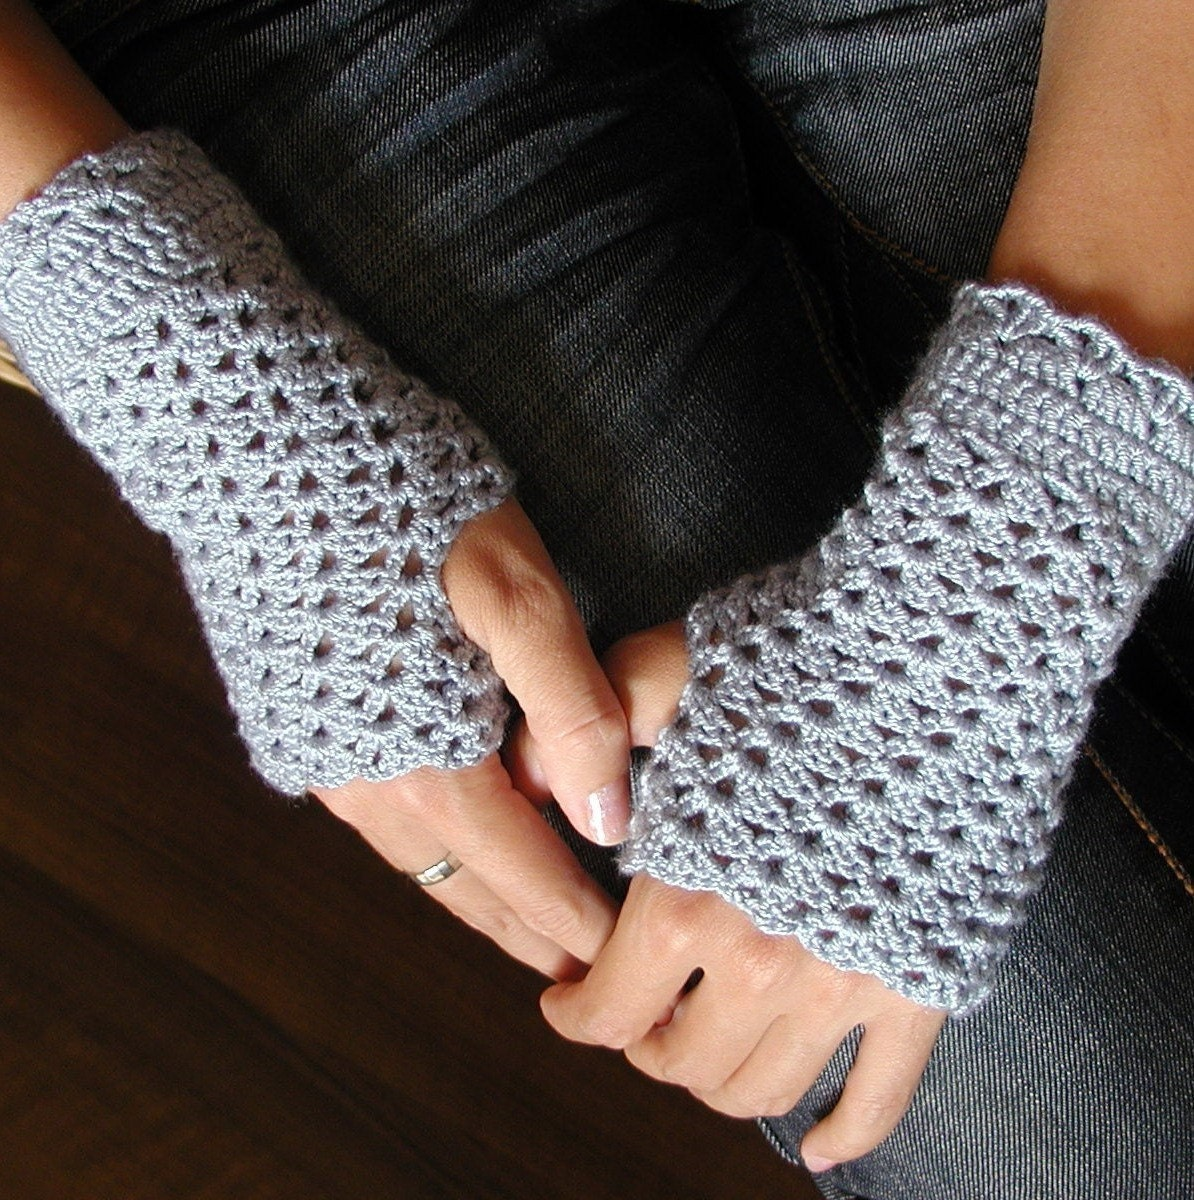 Crochet Mitten Pattern : Crocheted Fingerless Mittens PDF Crochet Pattern By FrougesArt